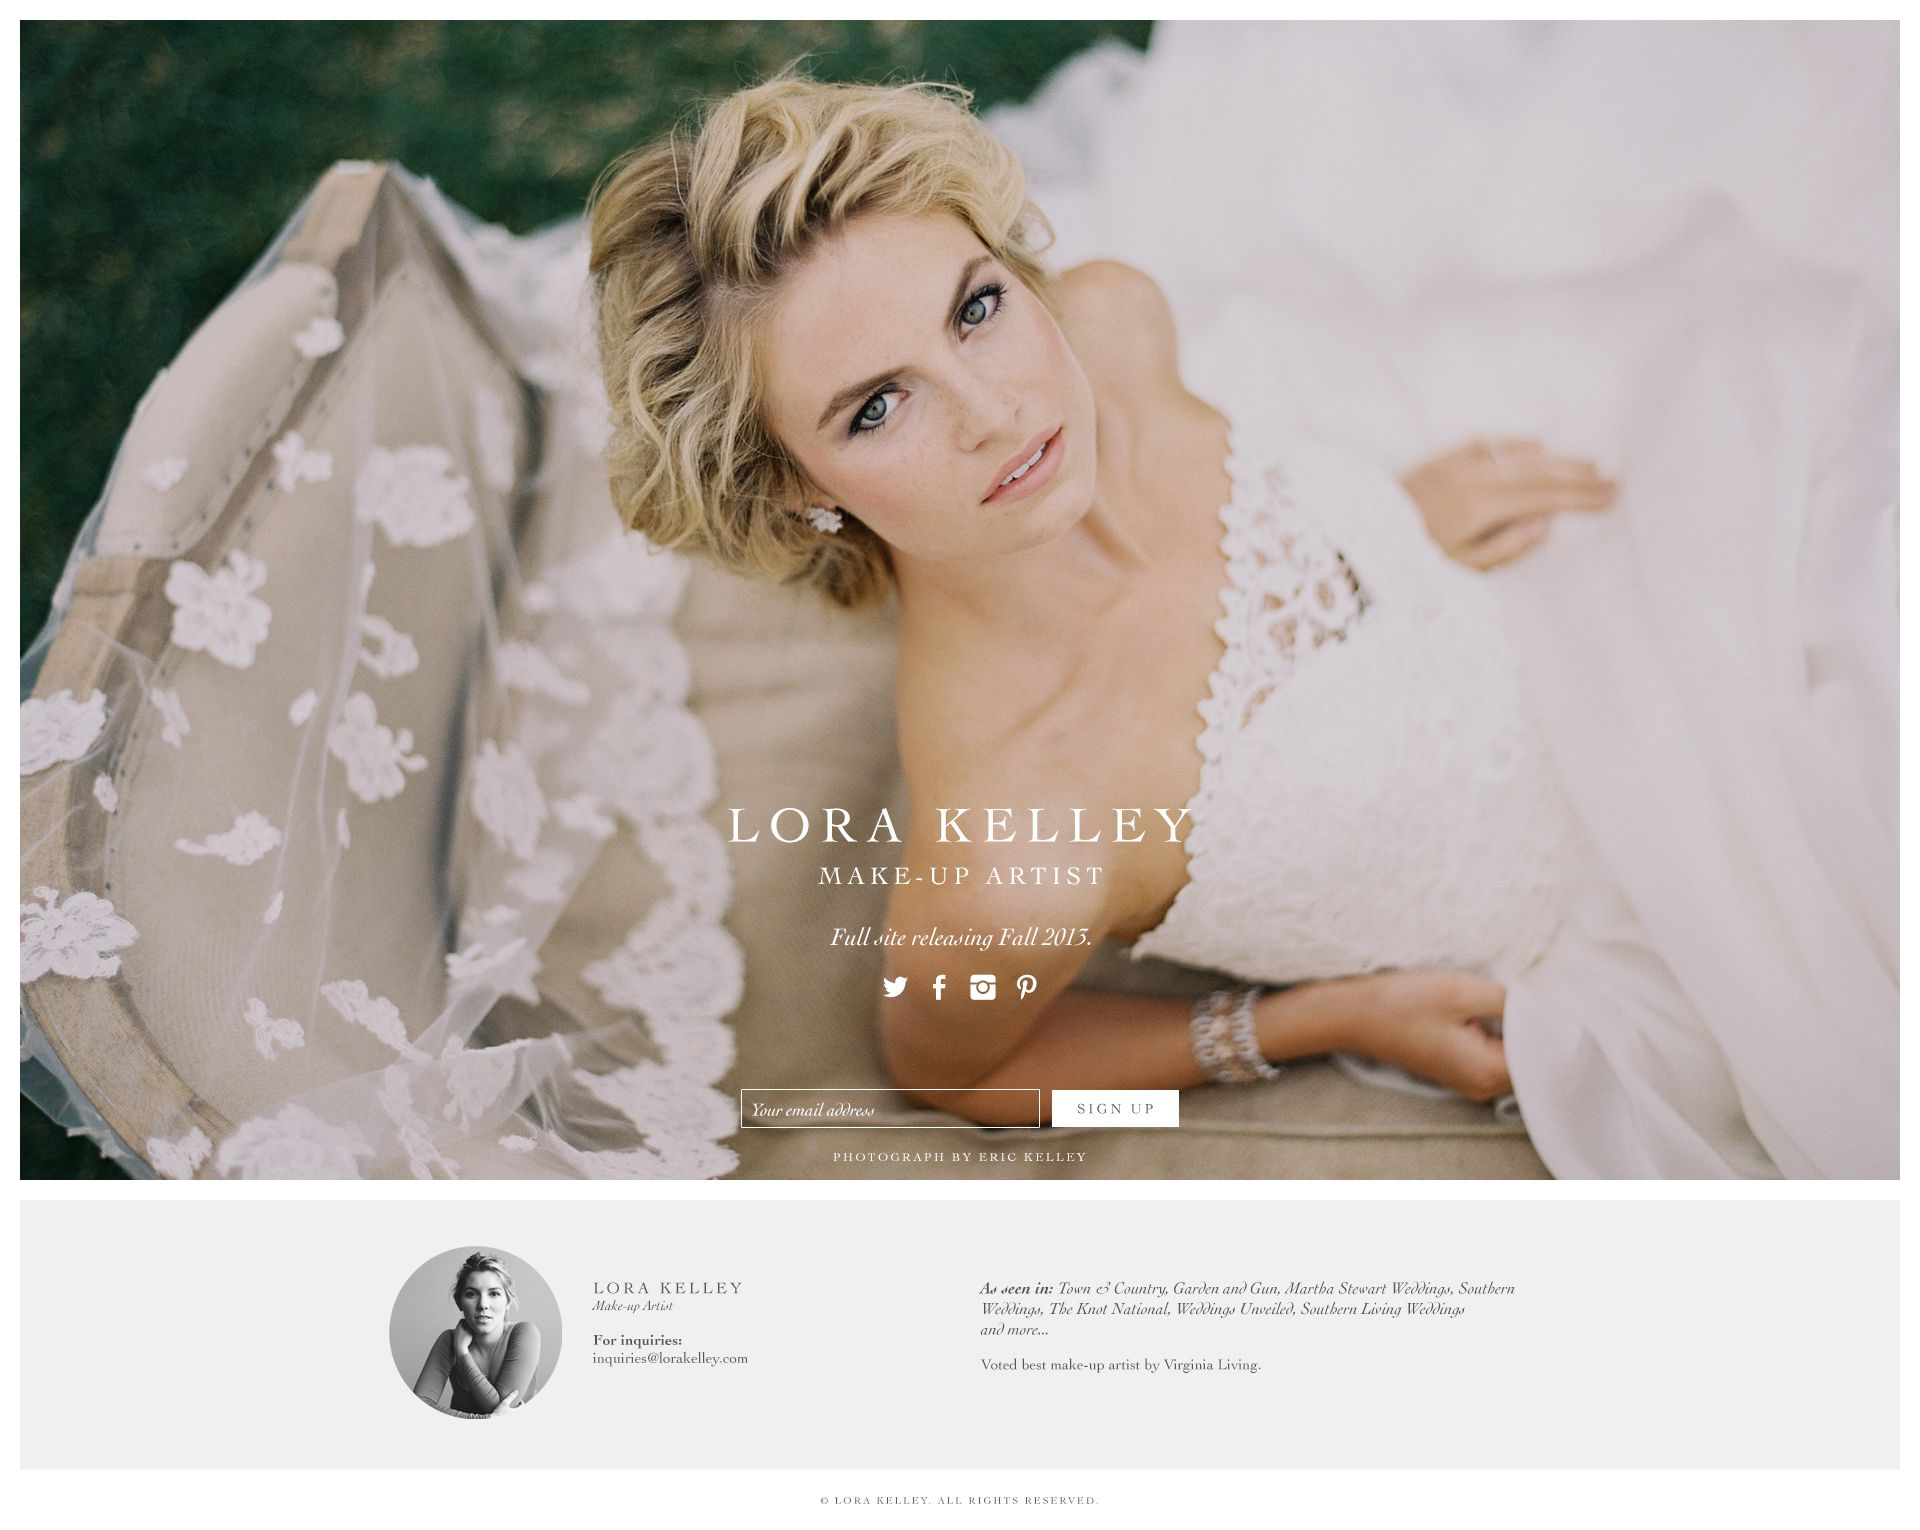 make-up artist website design | design // ux+web | Pinterest ...